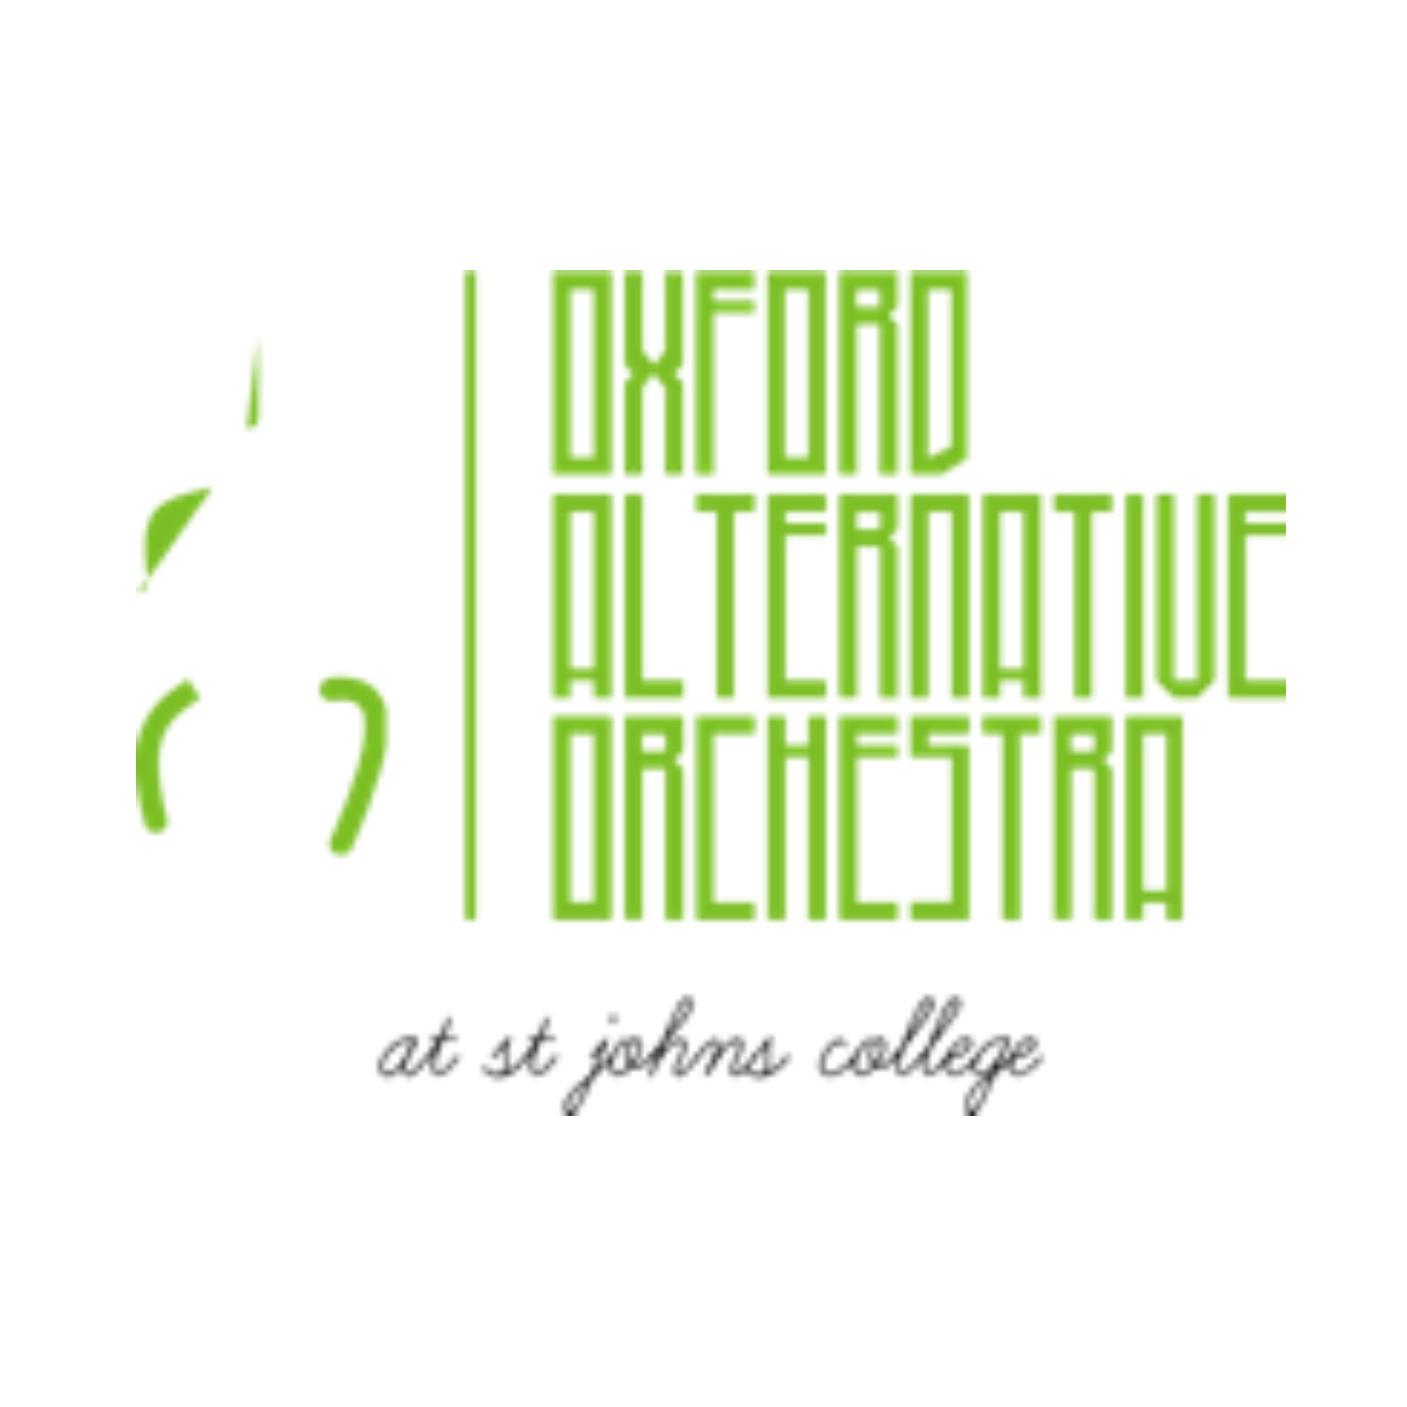 Oxford Alternative Orchestra at St John's College